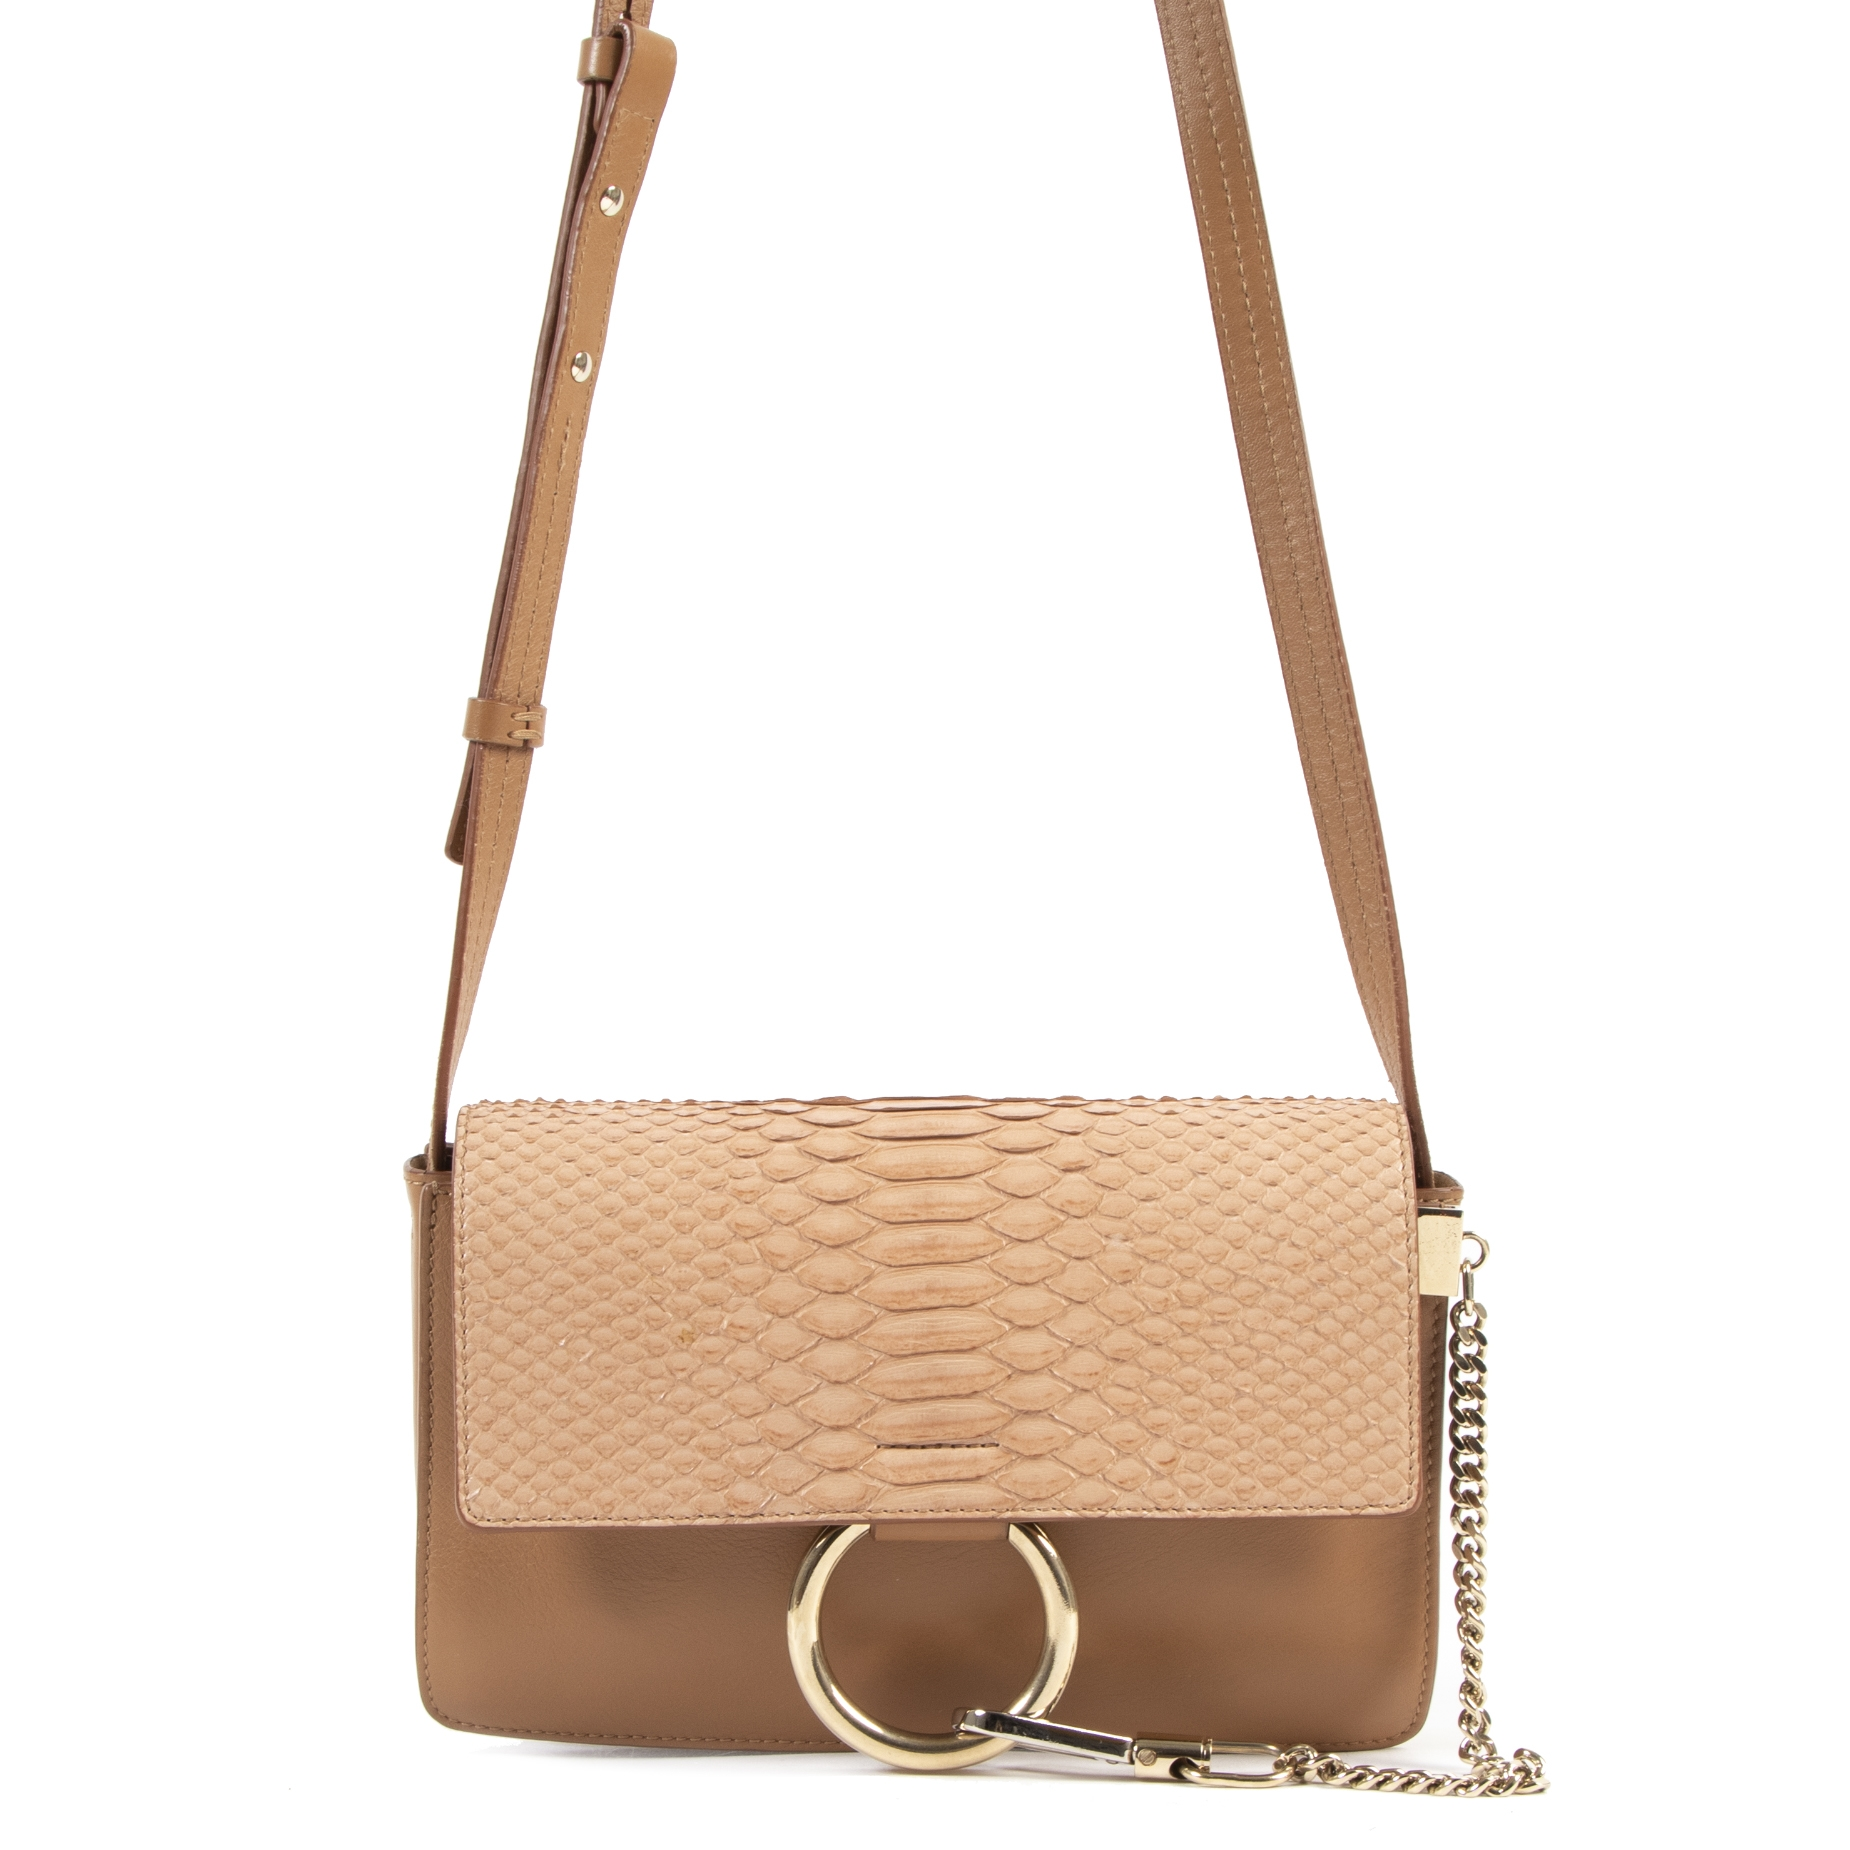 Chloe Caramel Python Calfskin Small Faye Shoulder Bag